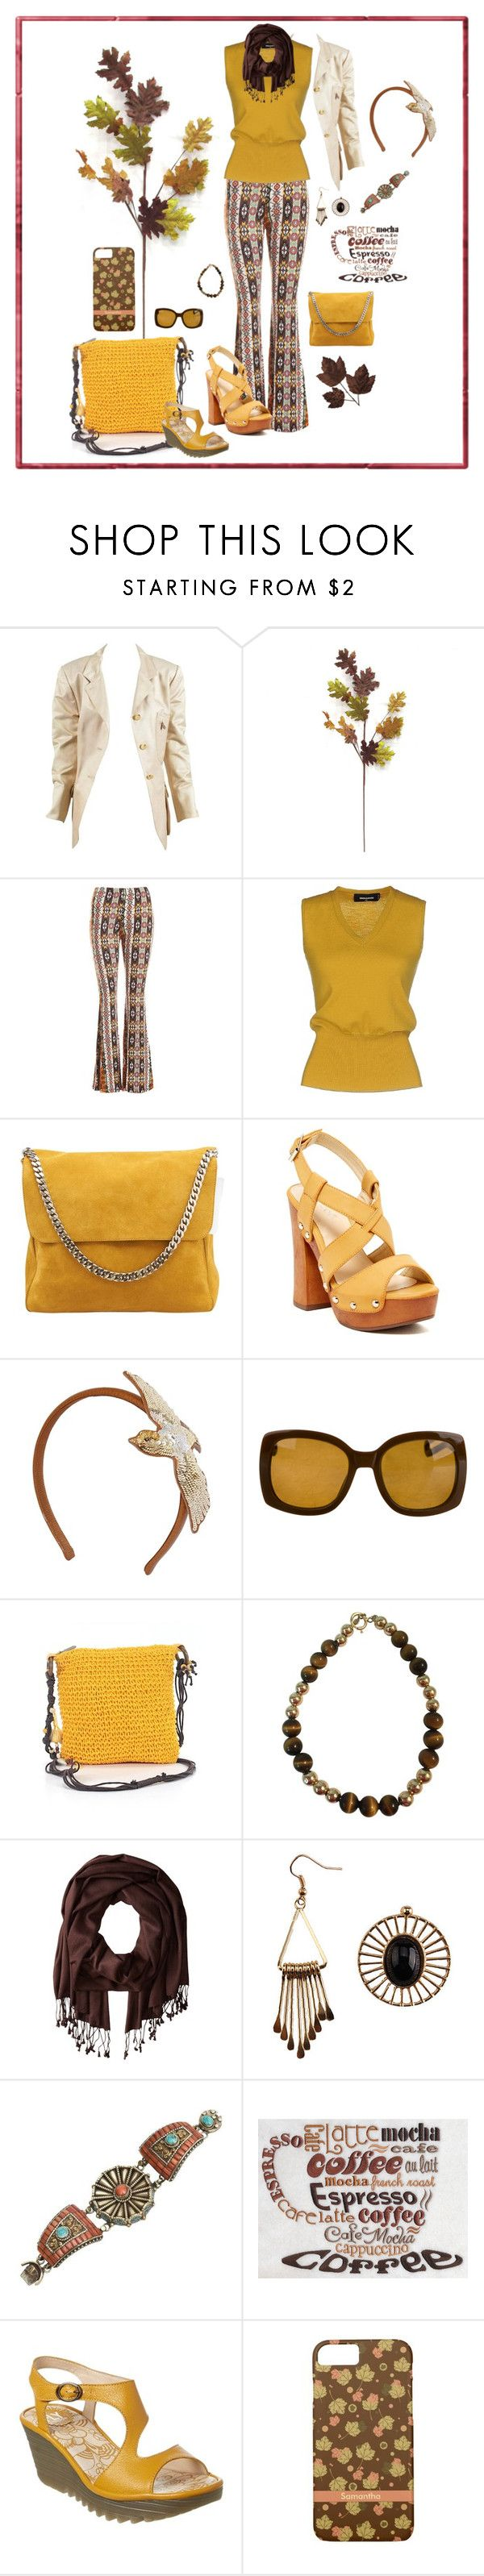 """Cute Gold Brown Aztec Pant Outfit"" by fsg-designs ❤ liked on Polyvore featuring Hermès, Sans Souci, Dsquared2, CÉLINE, Bucco, RED Valentino, Yves Saint Laurent, Sun N' Sand, Betsey Johnson and Fly LONDON"